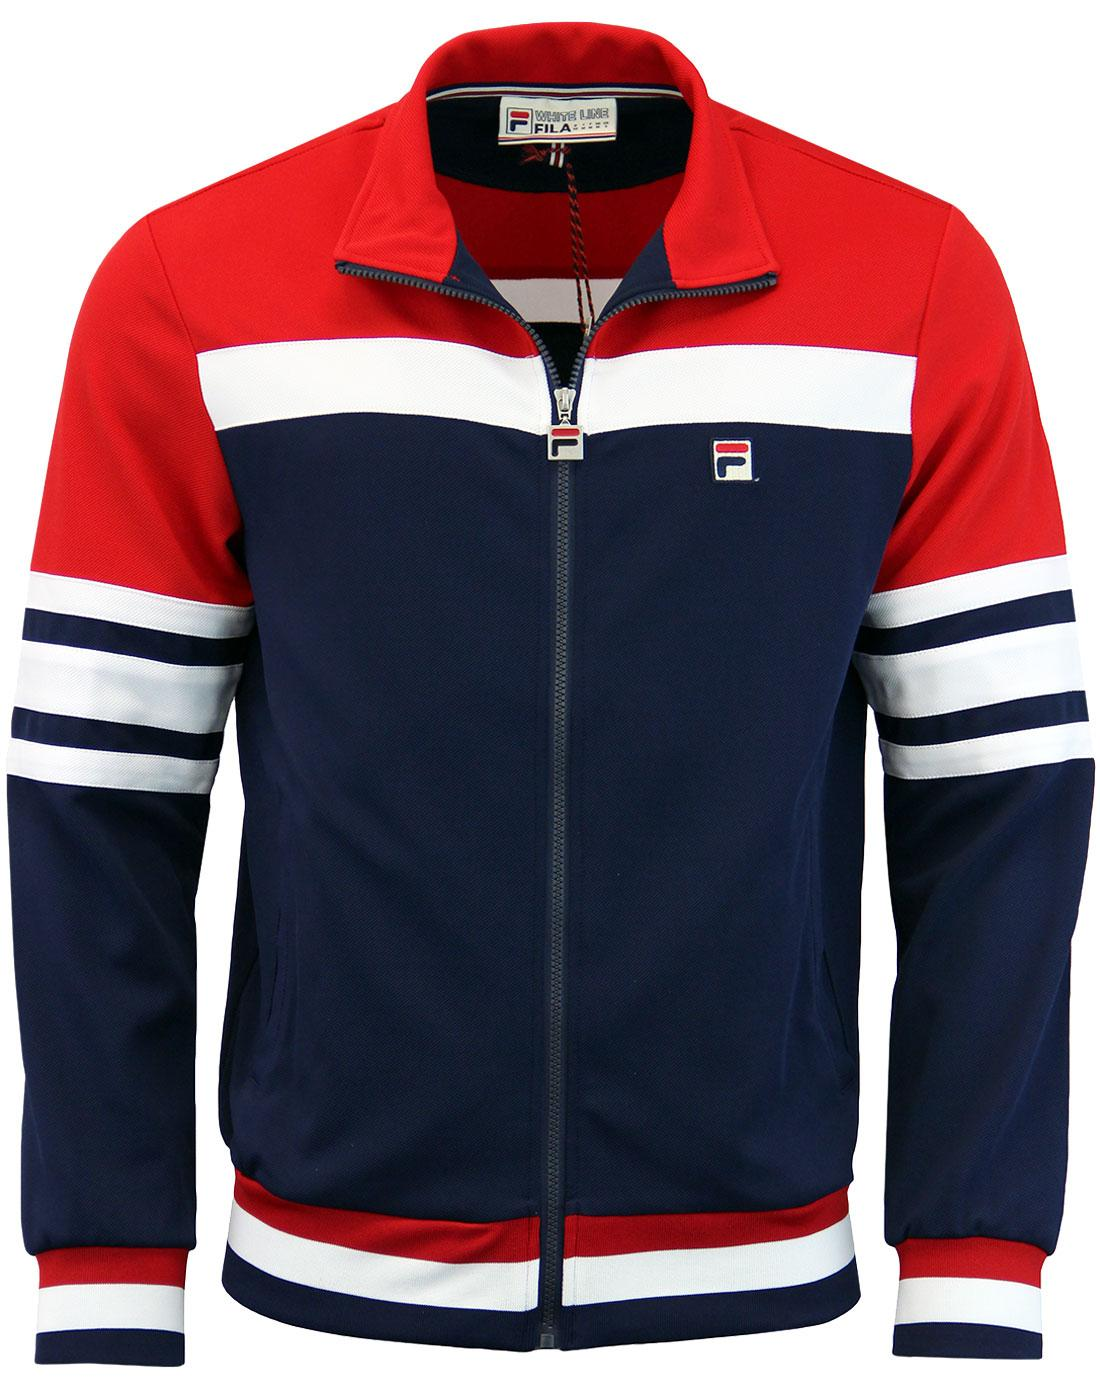 Courto FILA VINTAGE Retro 80s Stripe Track Jacket